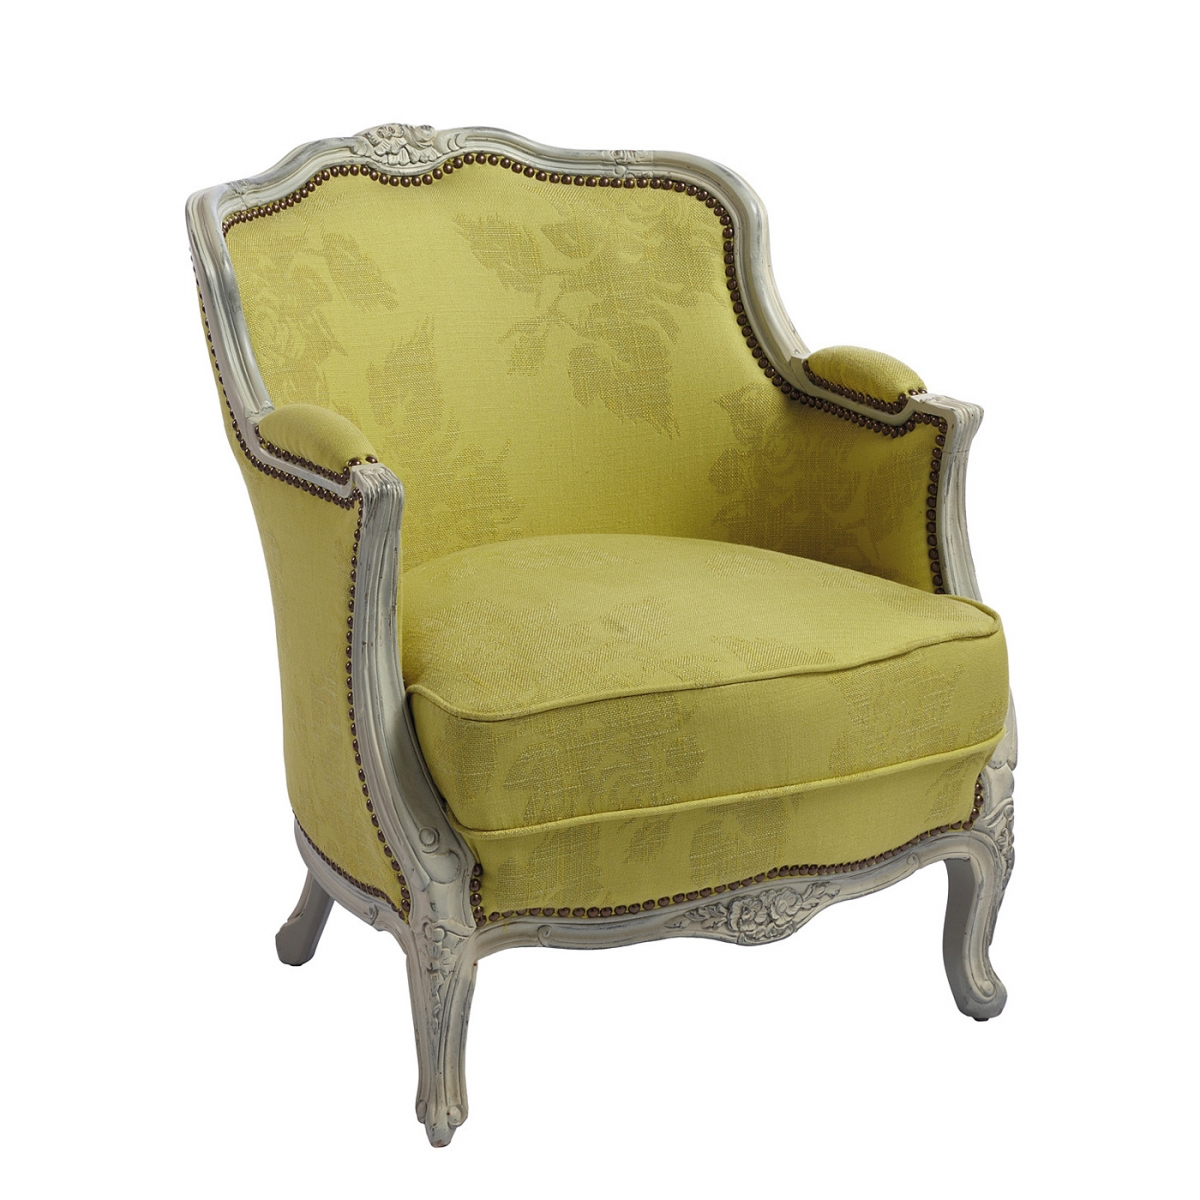 Fauteuil Shabby Chic Bethlehem Pa Apartments Bergere Style Chairs Apartments I Like